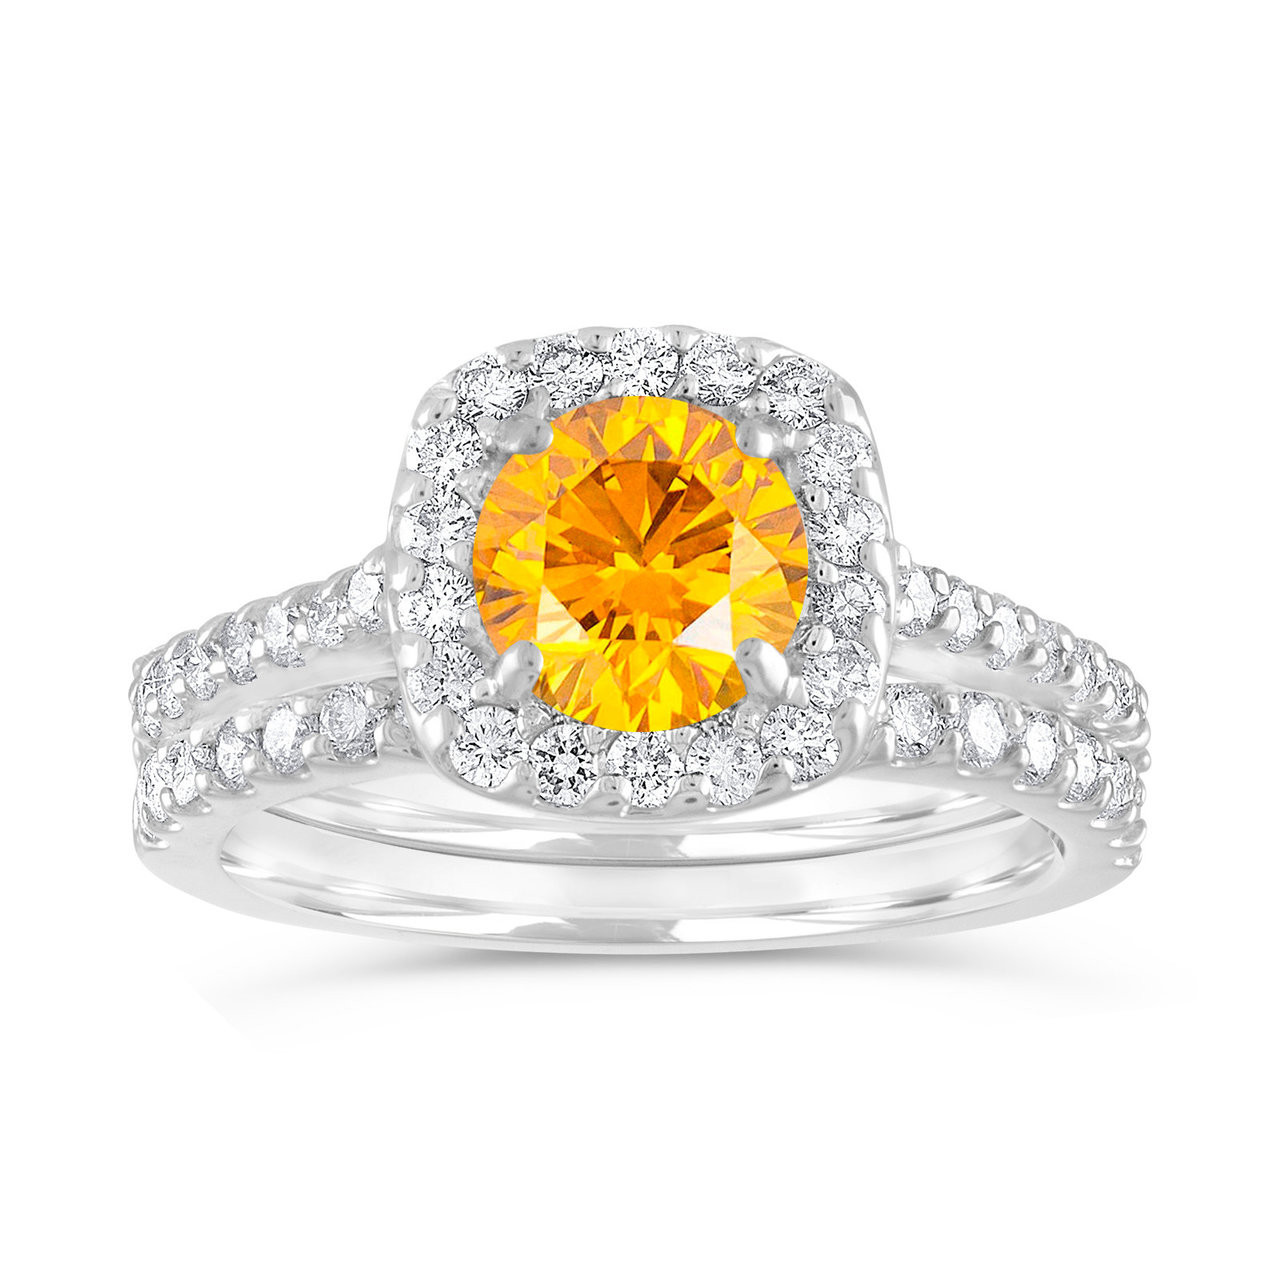 0a6c3d695b Yellow Diamond Engagement Ring Set, Canary Diamond Wedding ...